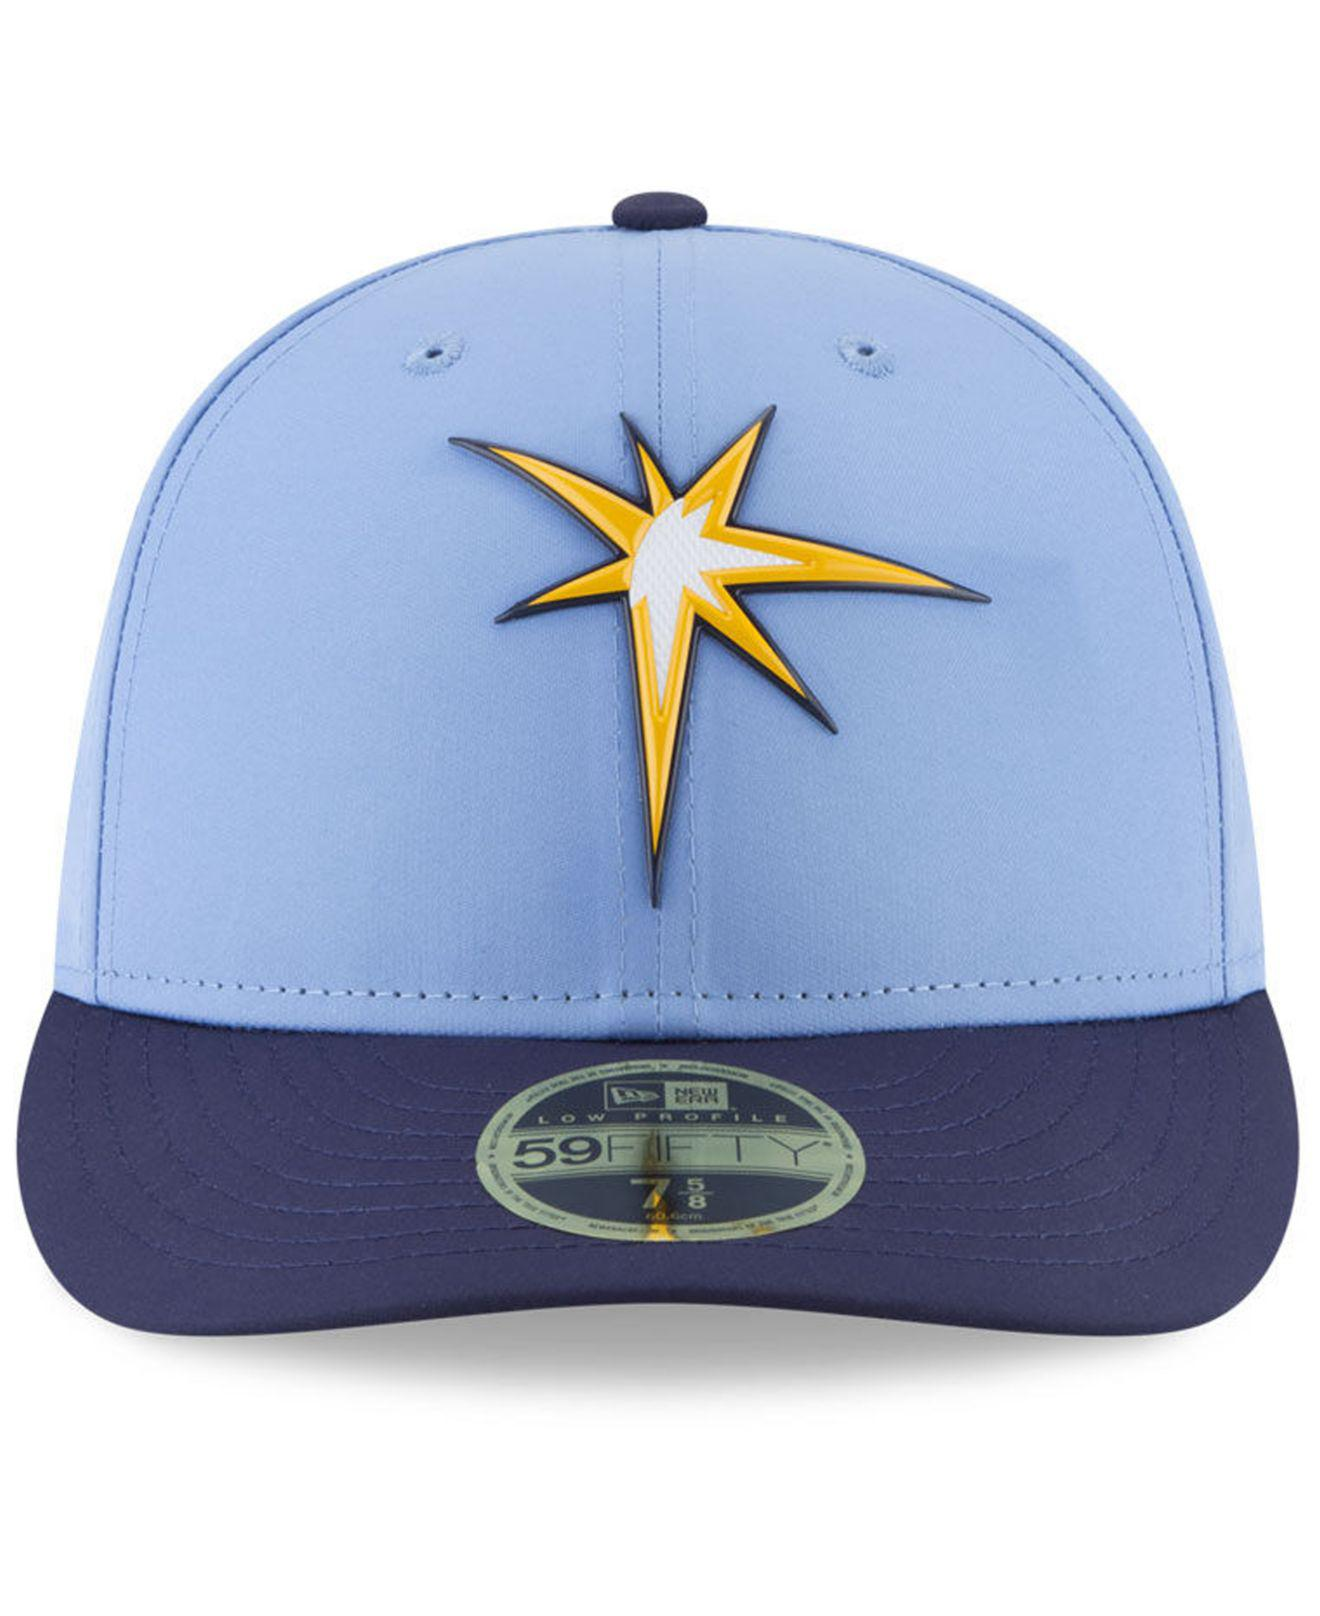 low priced 98421 0e616 KTZ Tampa Bay Rays Spring Training Pro Light Low Profile 59fifty ...